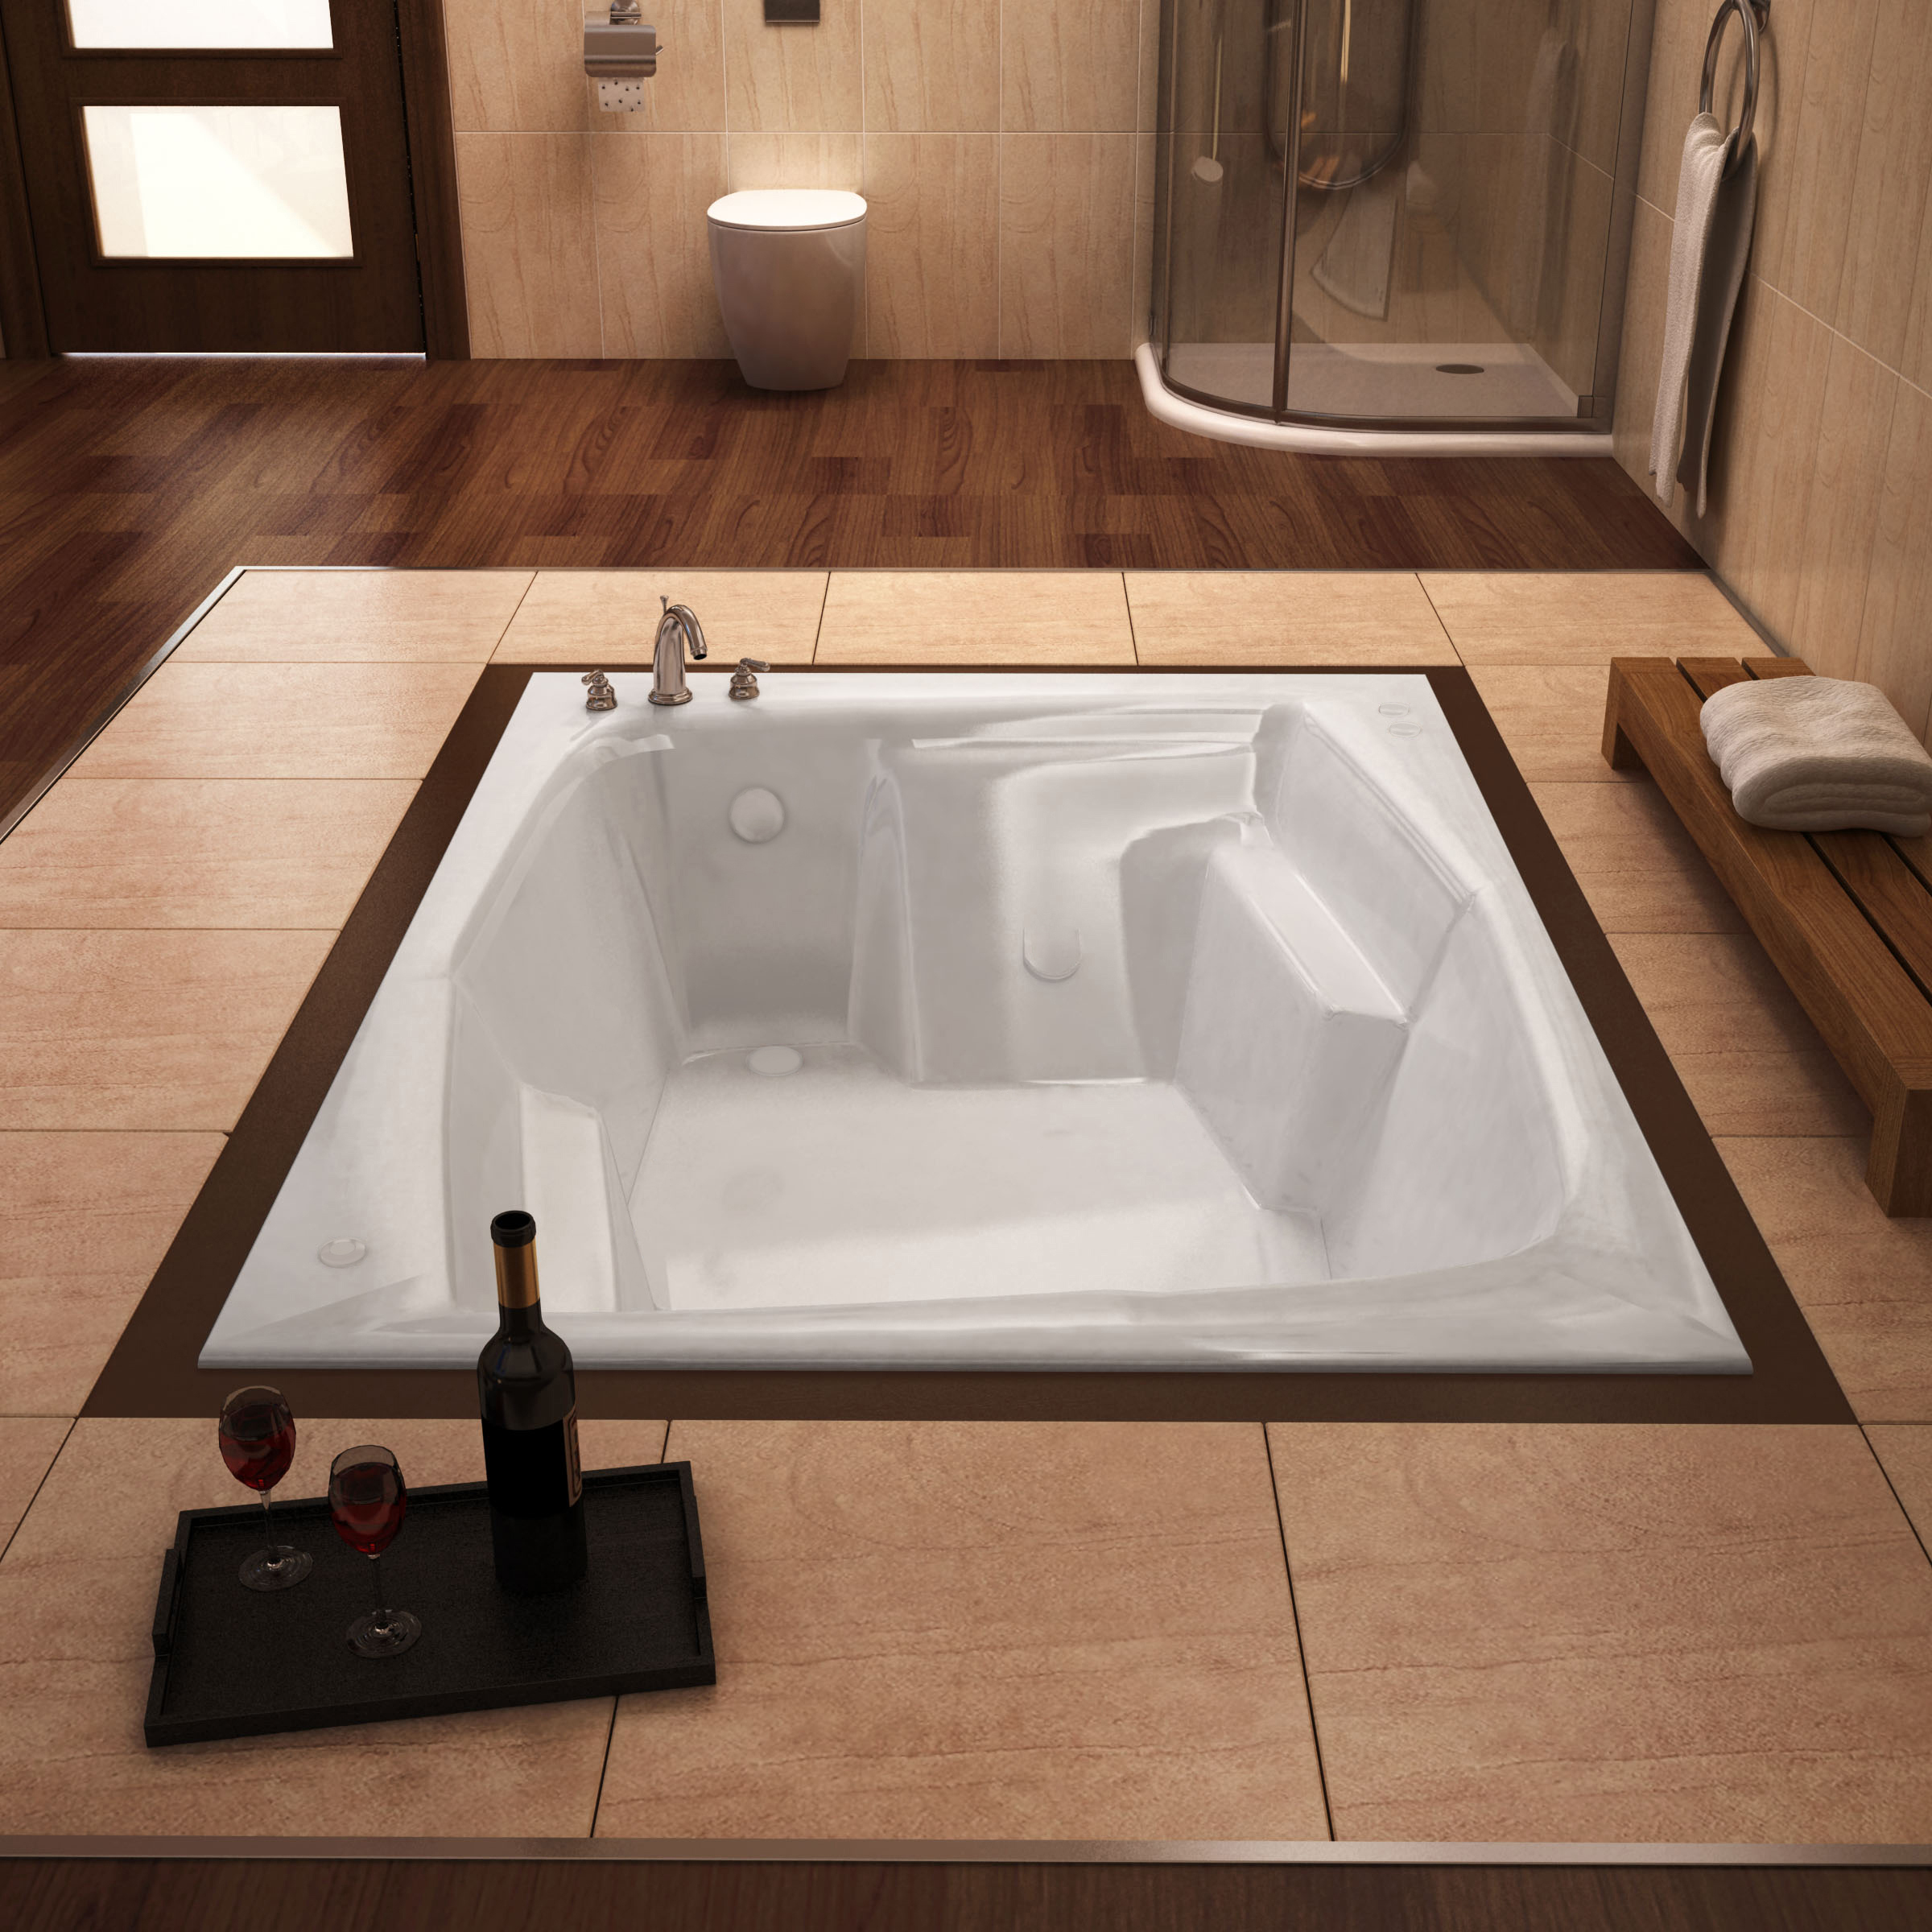 Capri 72 x 54 Rectangular Bathtub